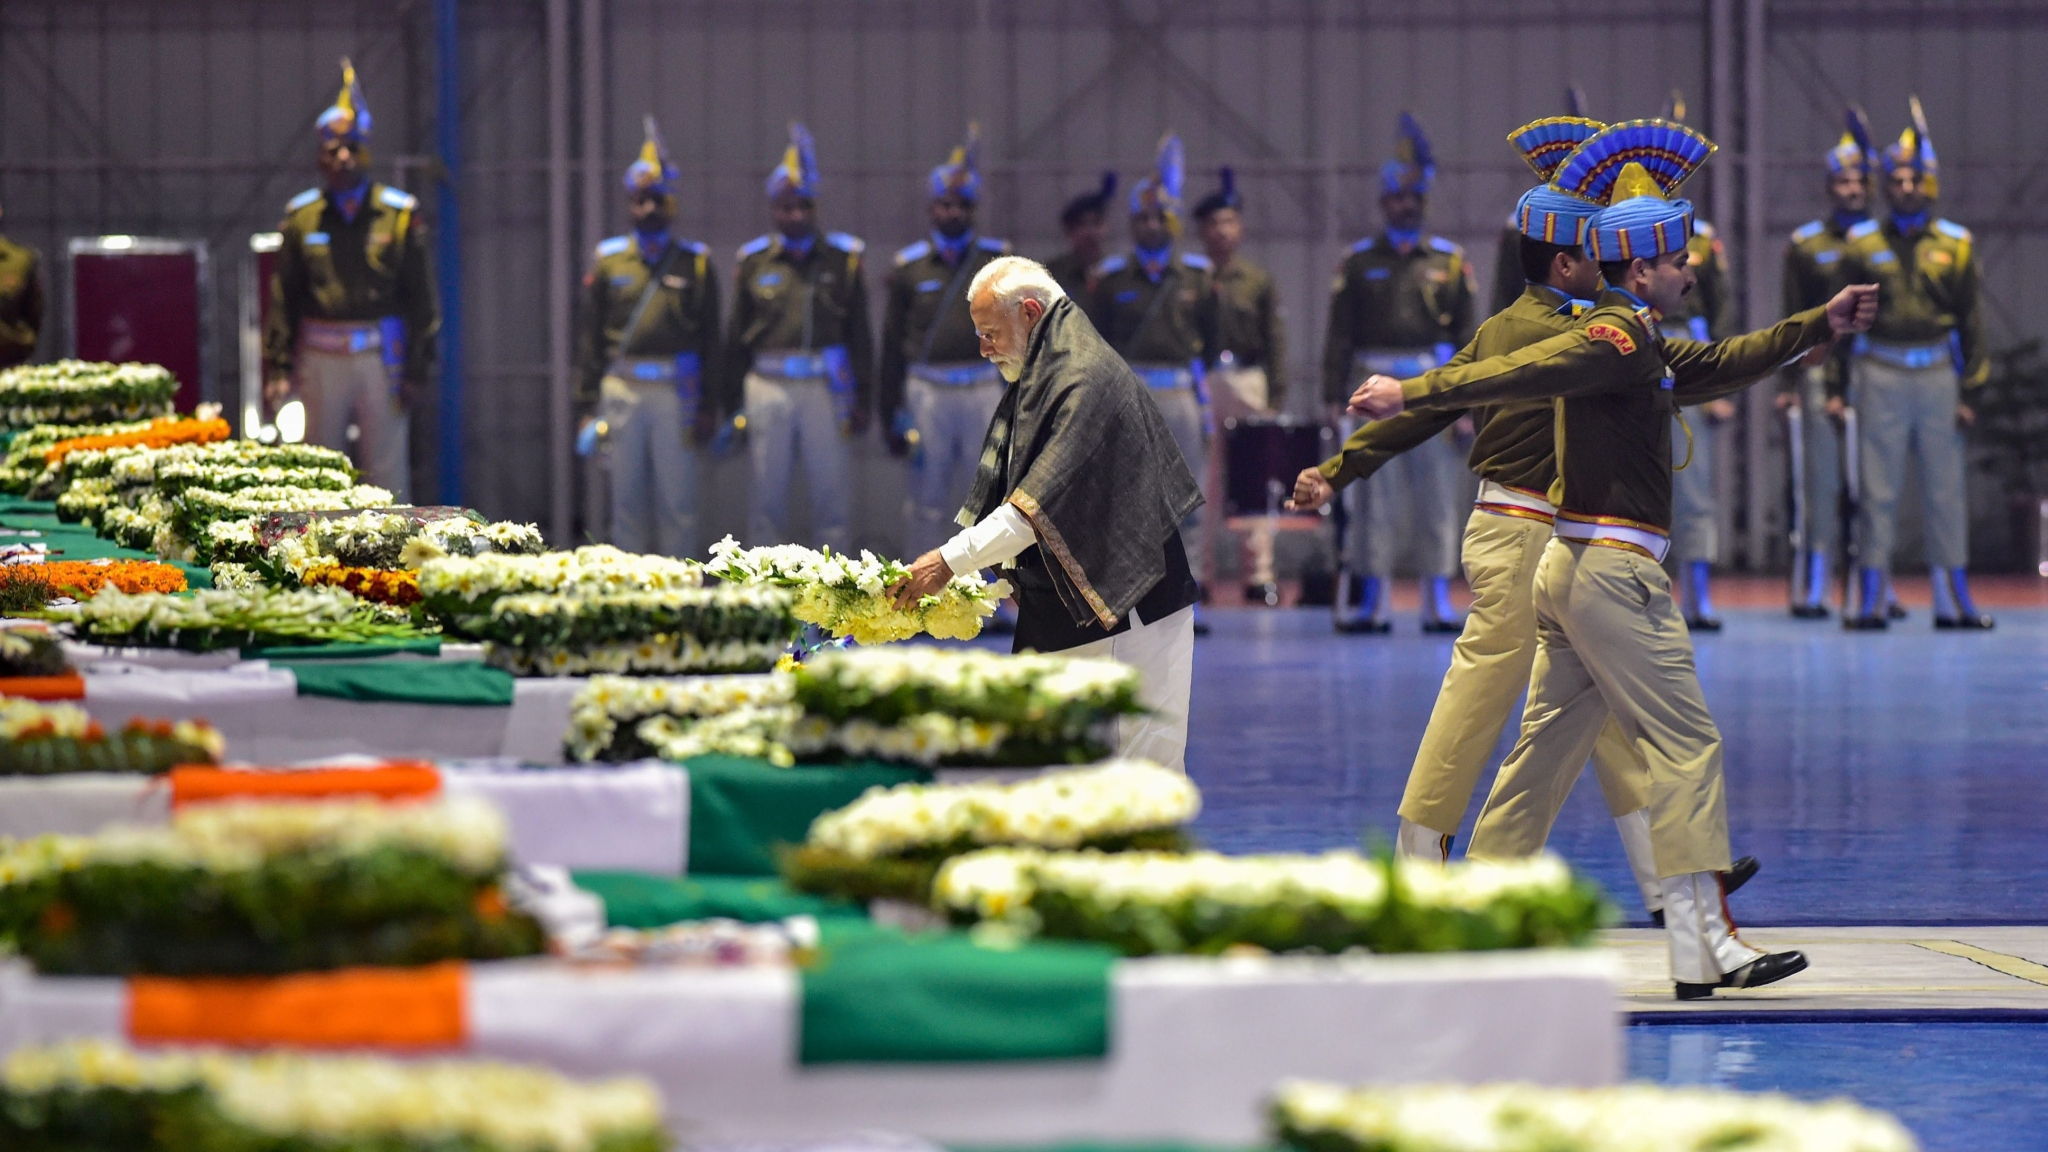 Chapter on Pulwama Martyrs May Be Part of Rajasthan School Books